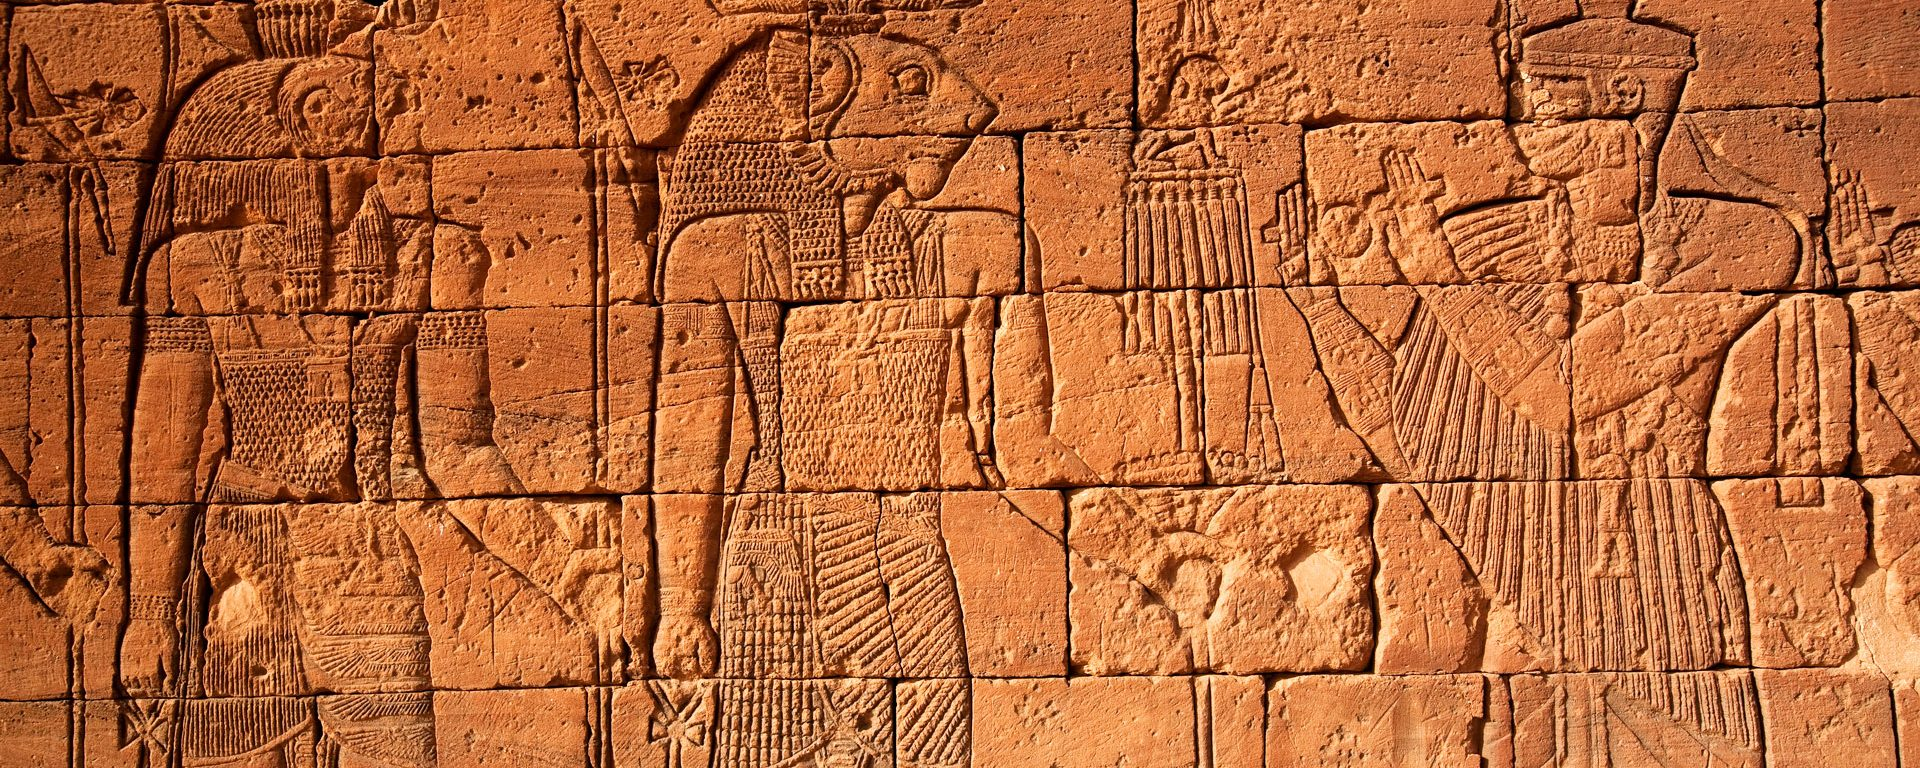 Hieroglyphics on the Lion Temple at Nagaa, Sudan